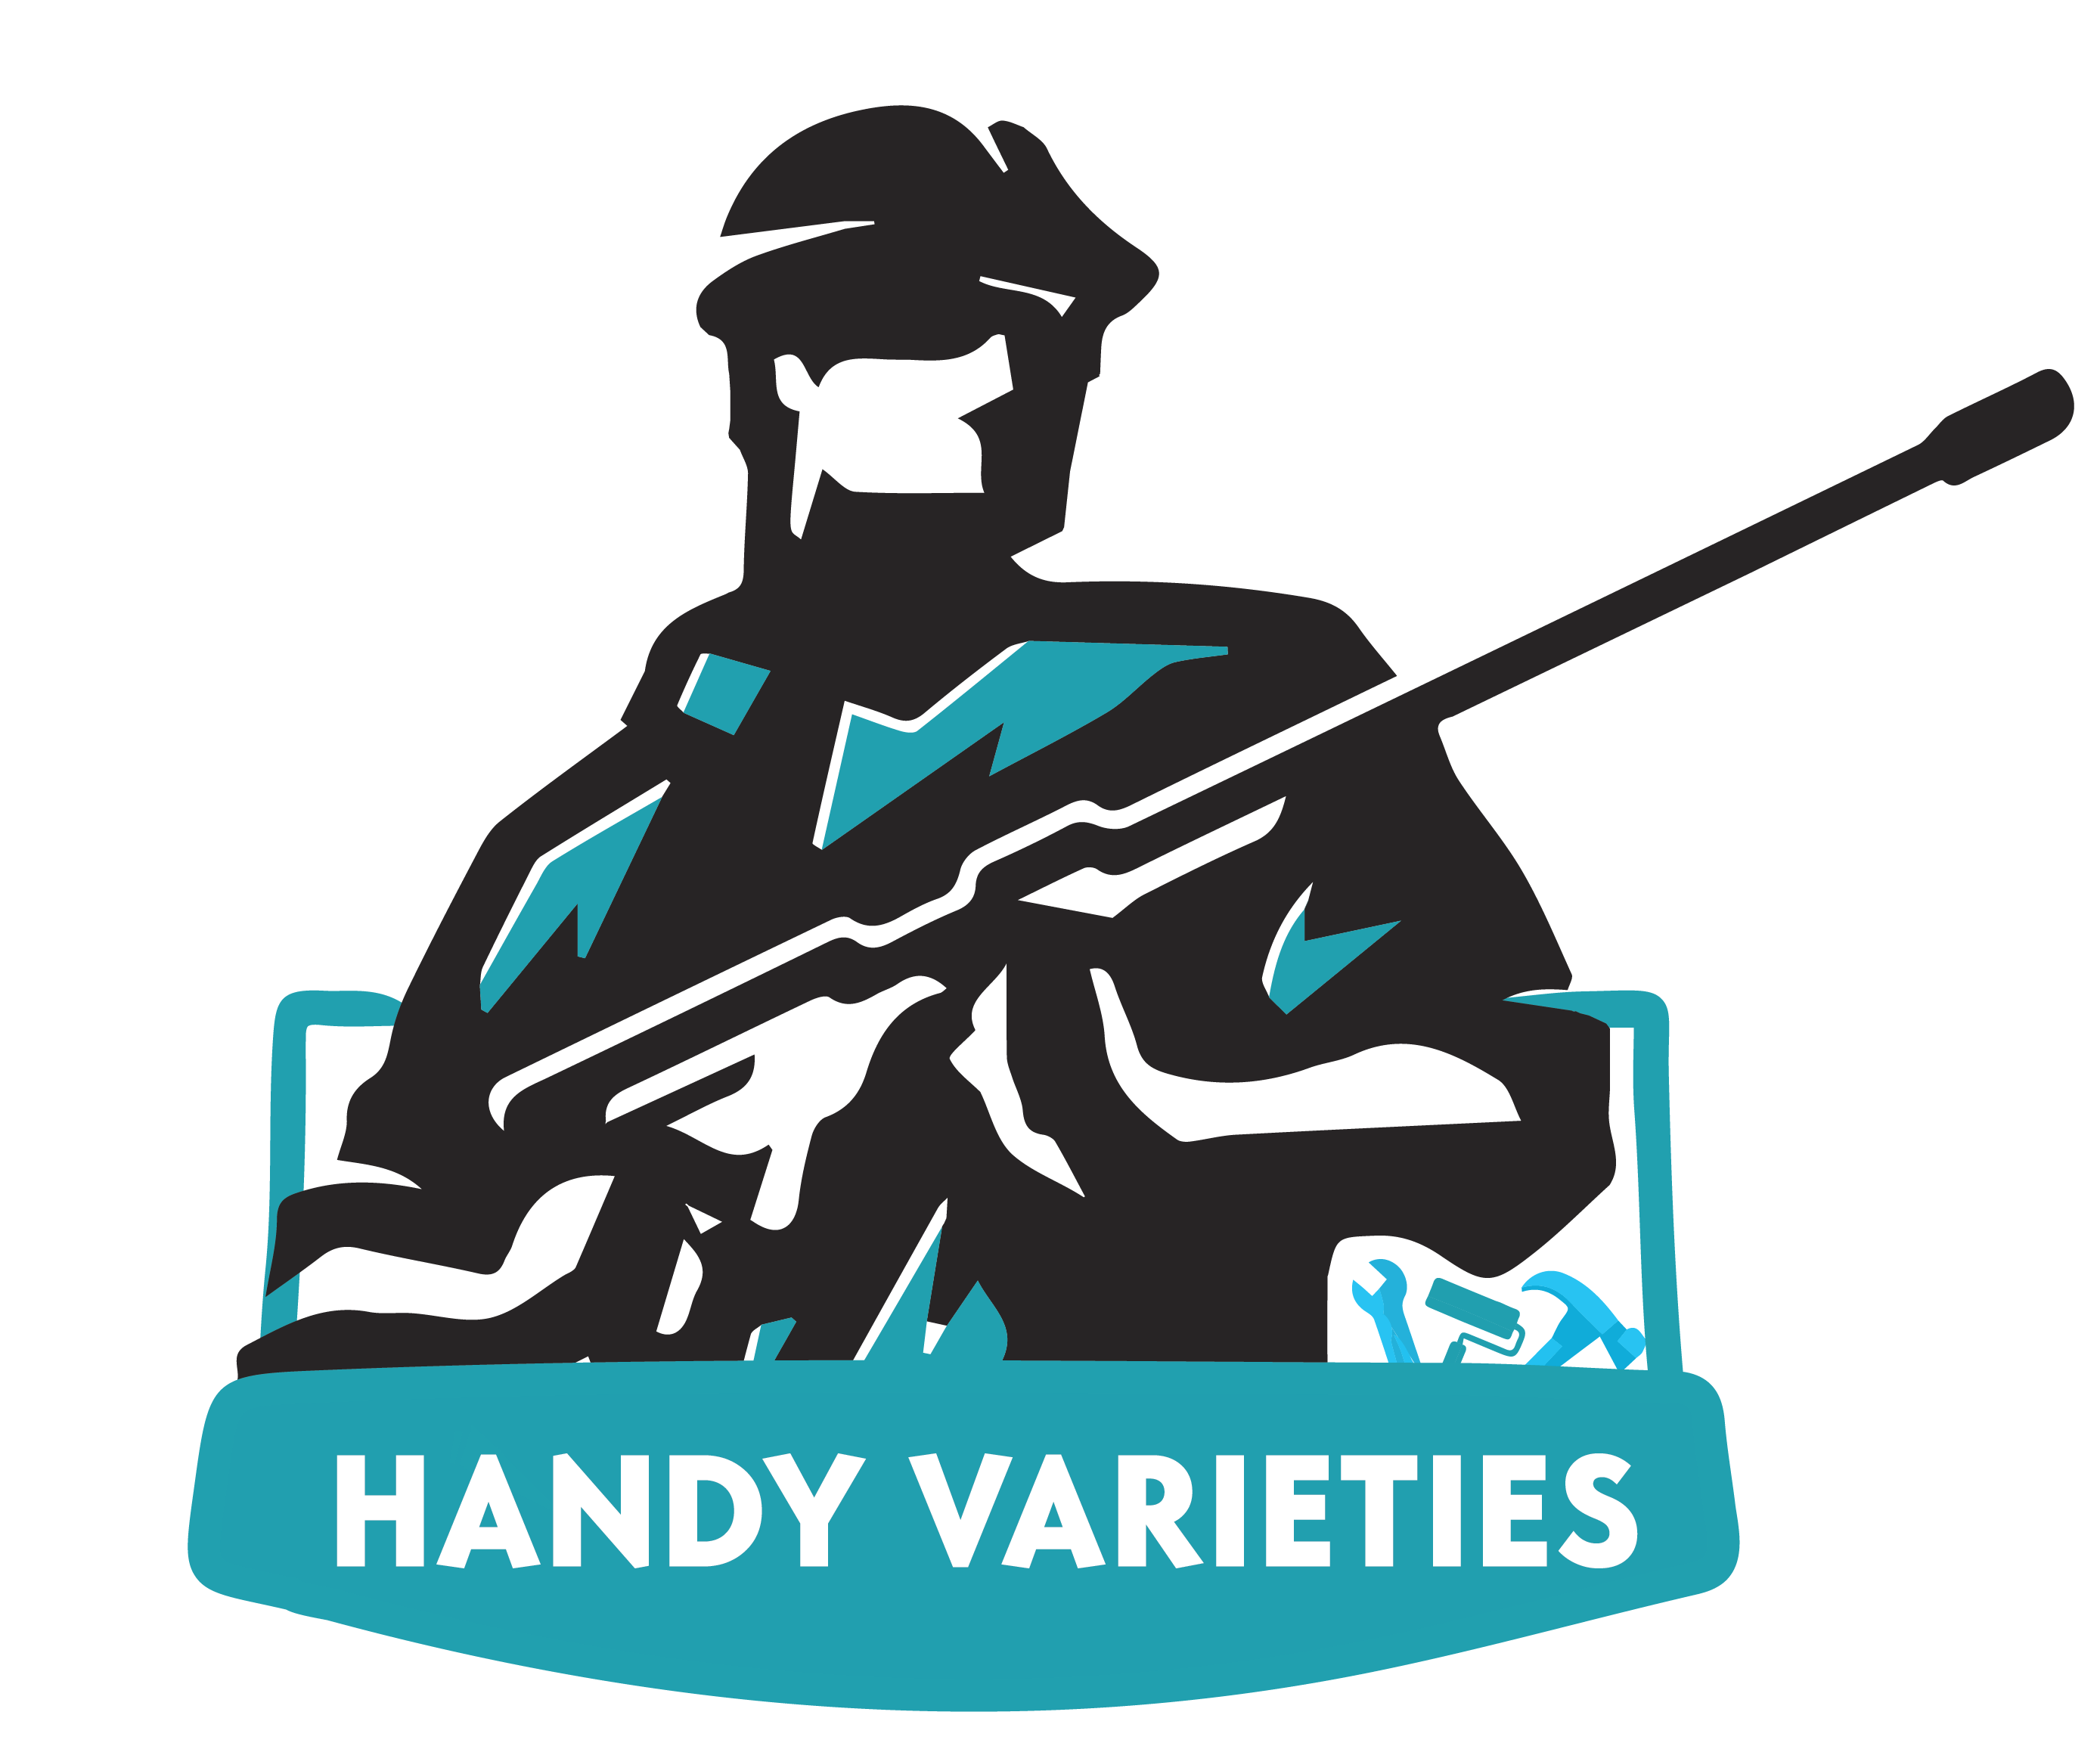 Handy Varieties – Blogging about Top Paint Sprayer Products